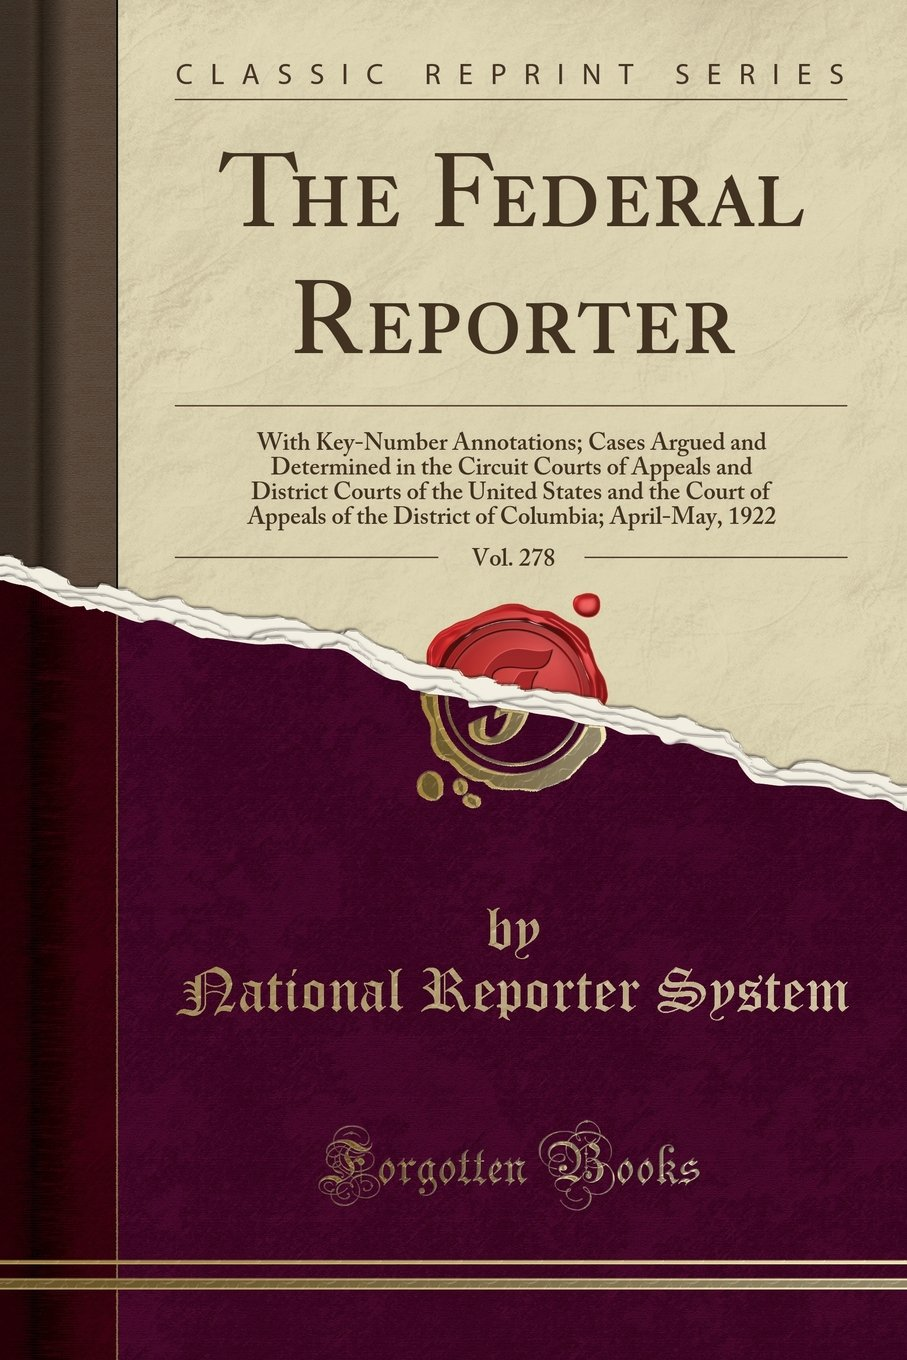 The Federal Reporter, Vol. 278: With Key-Number Annotations; Cases Argued and Determined in the Circuit Courts of Appeals and District Courts of the ... Columbia; April-May, 1922 (Classic Reprint) pdf